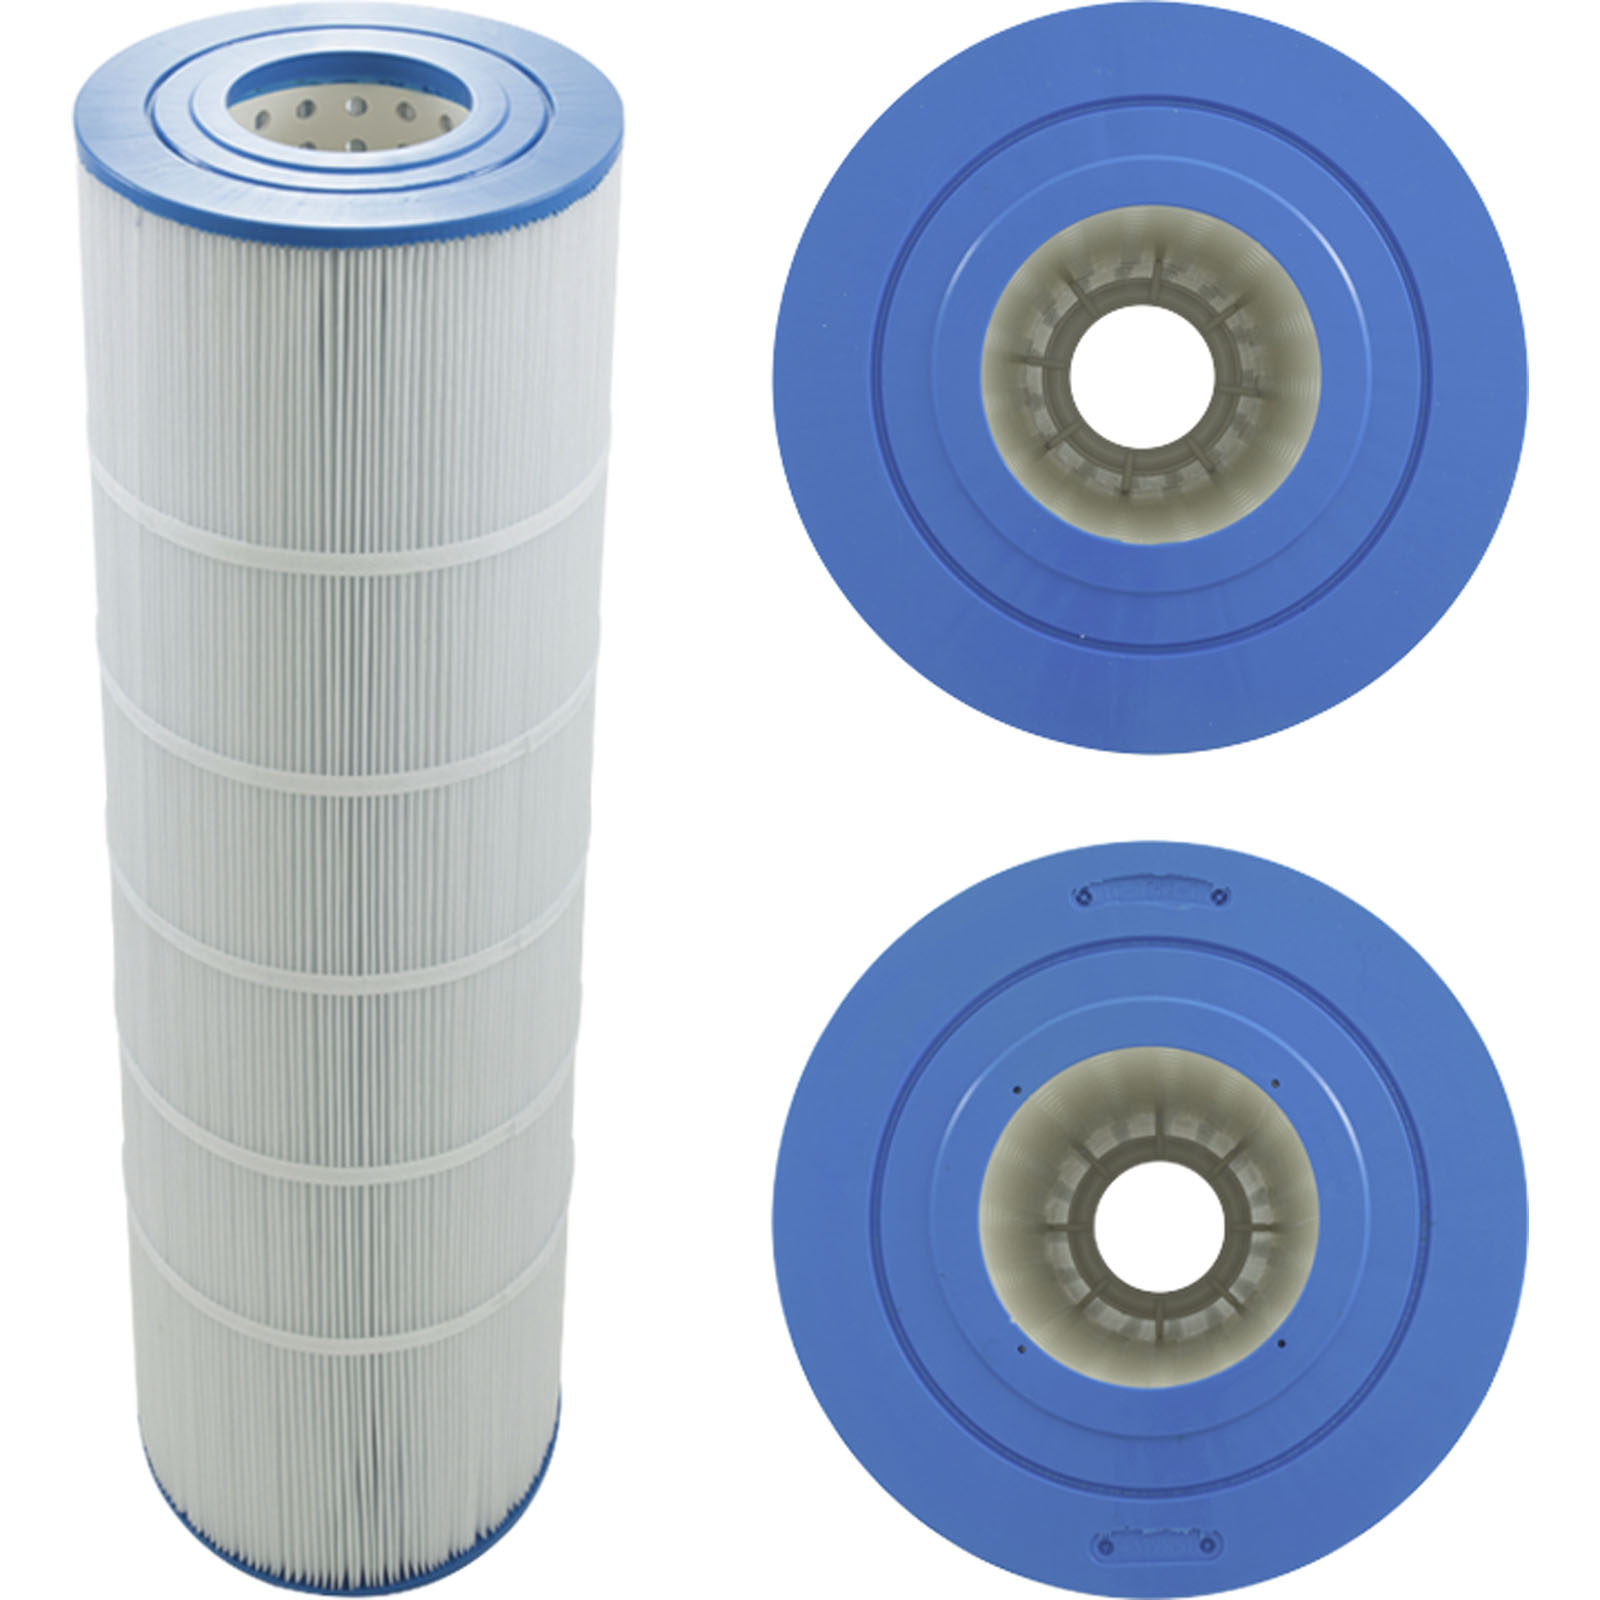 Hayward C1750 Star-Clear Plus Replacement Filter Cartridge